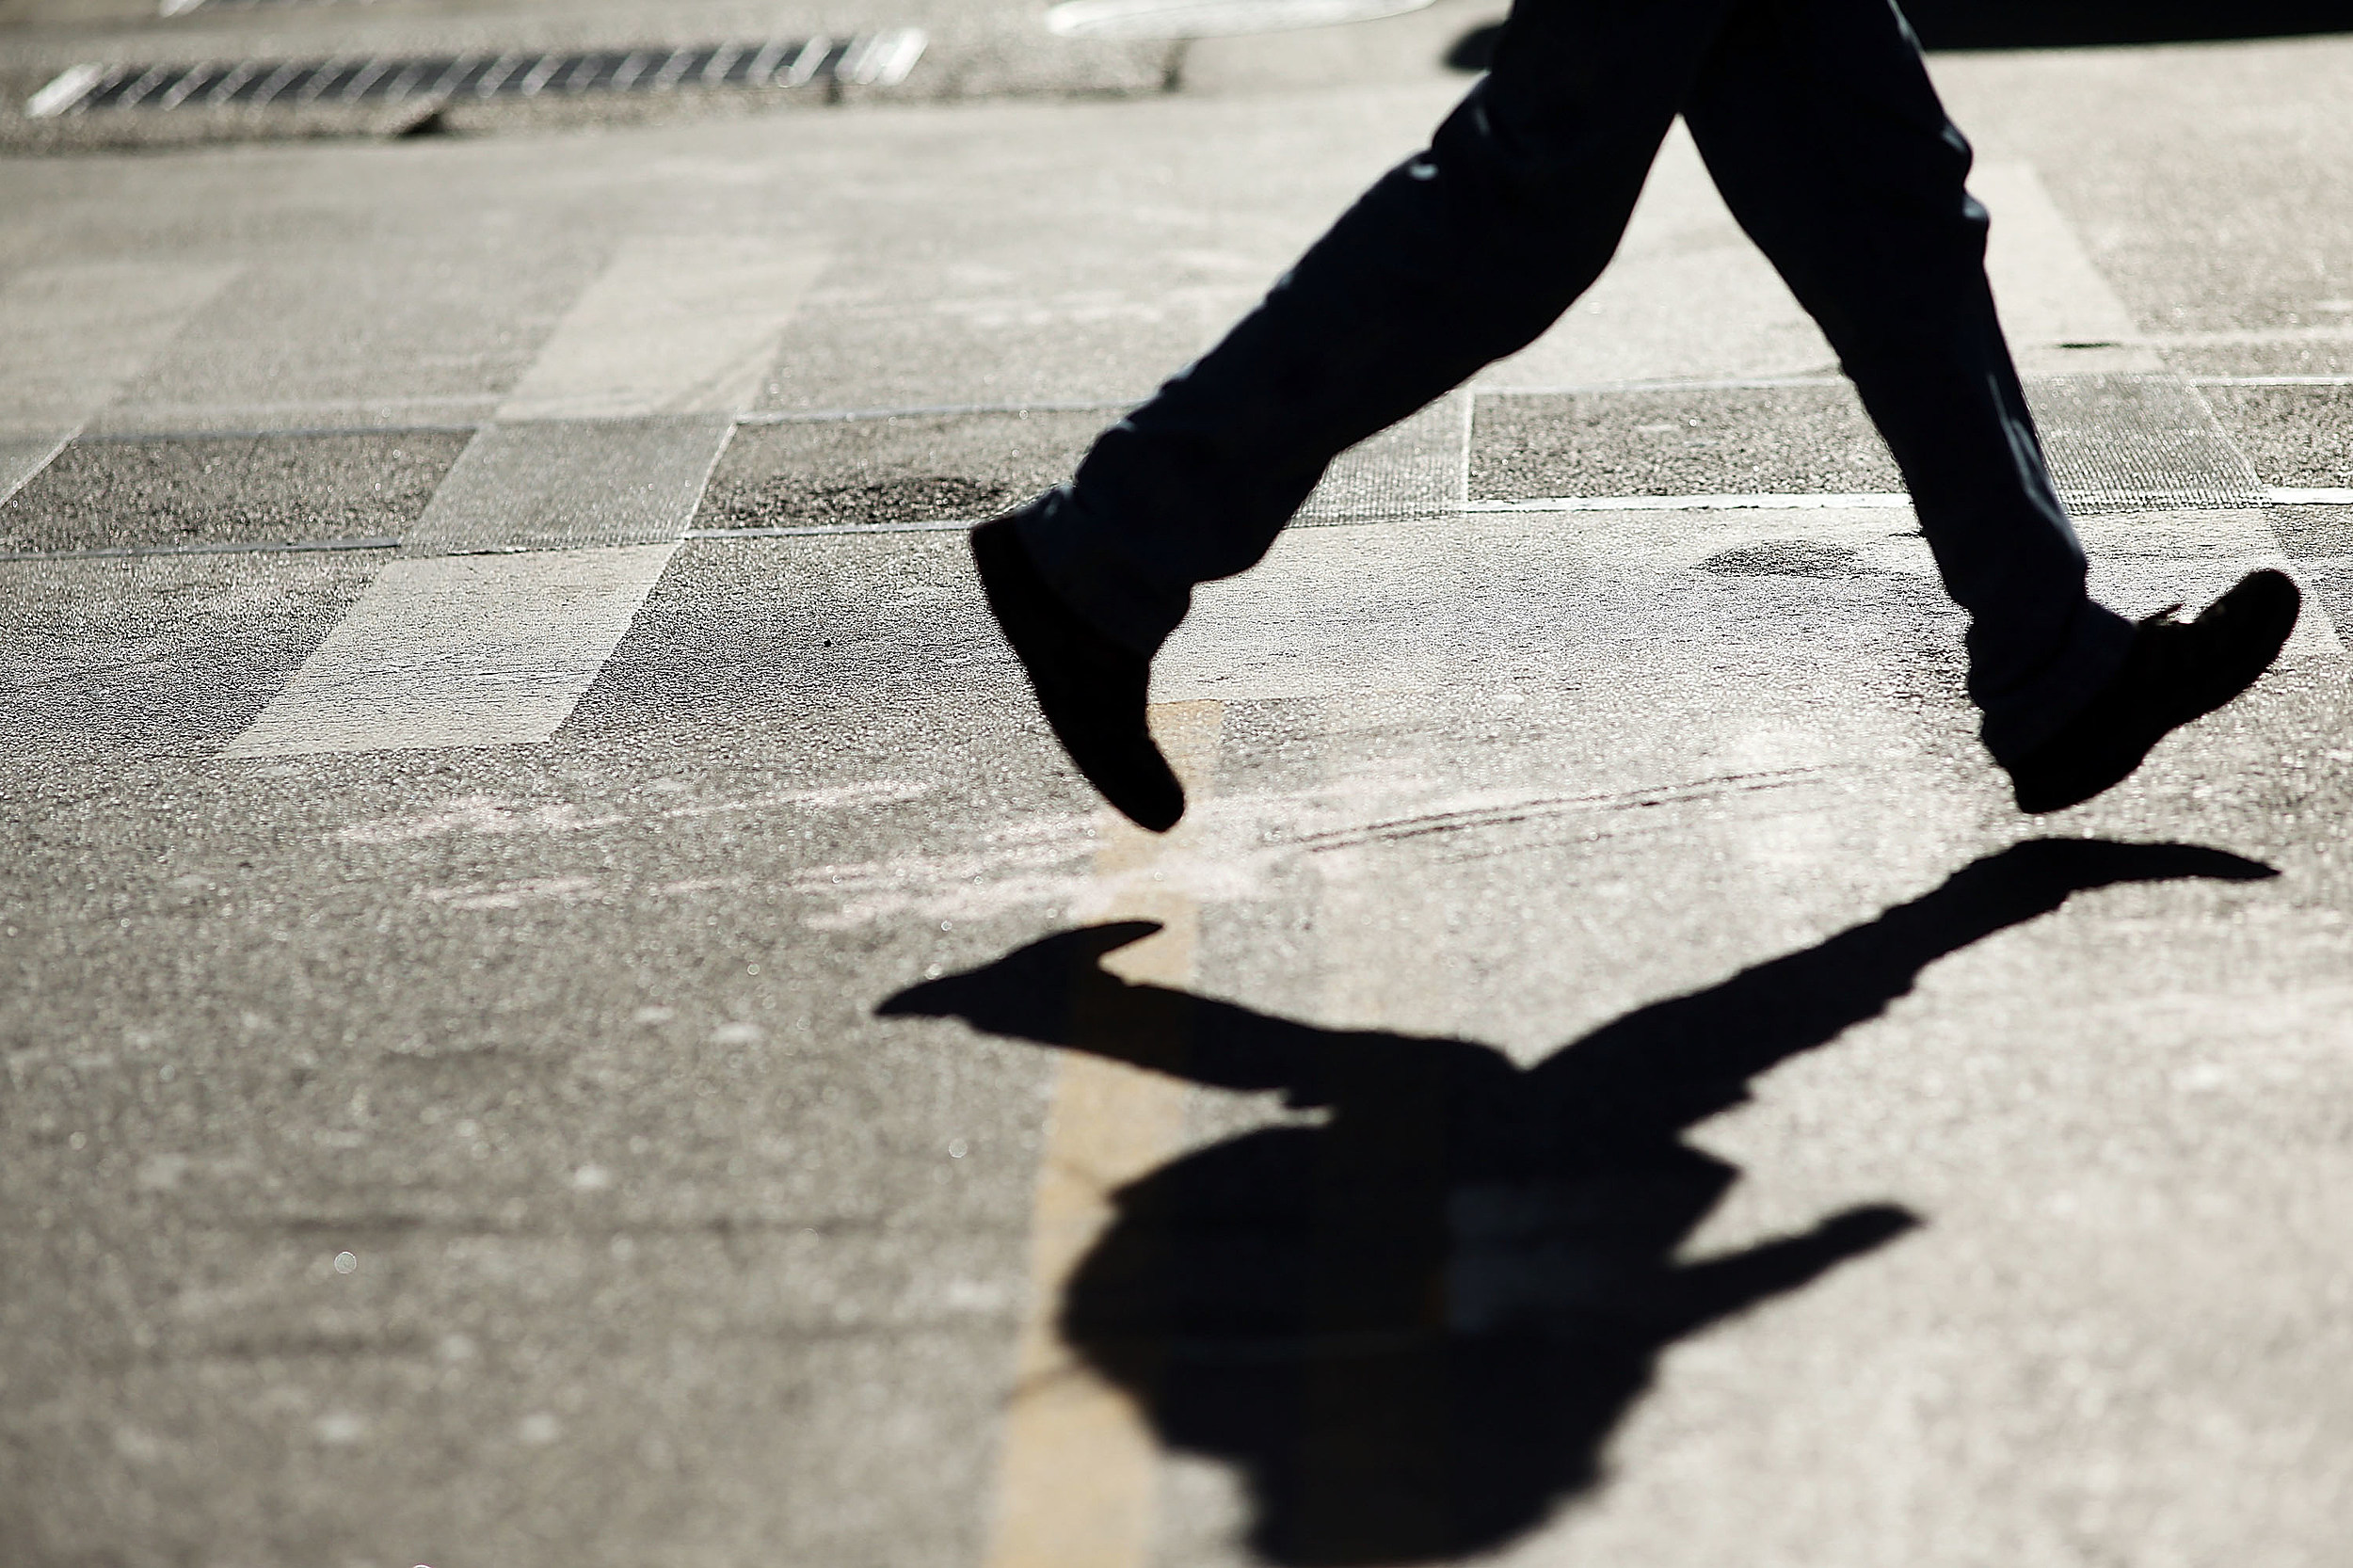 Pedestrian Fatalities On The Rise In New York City